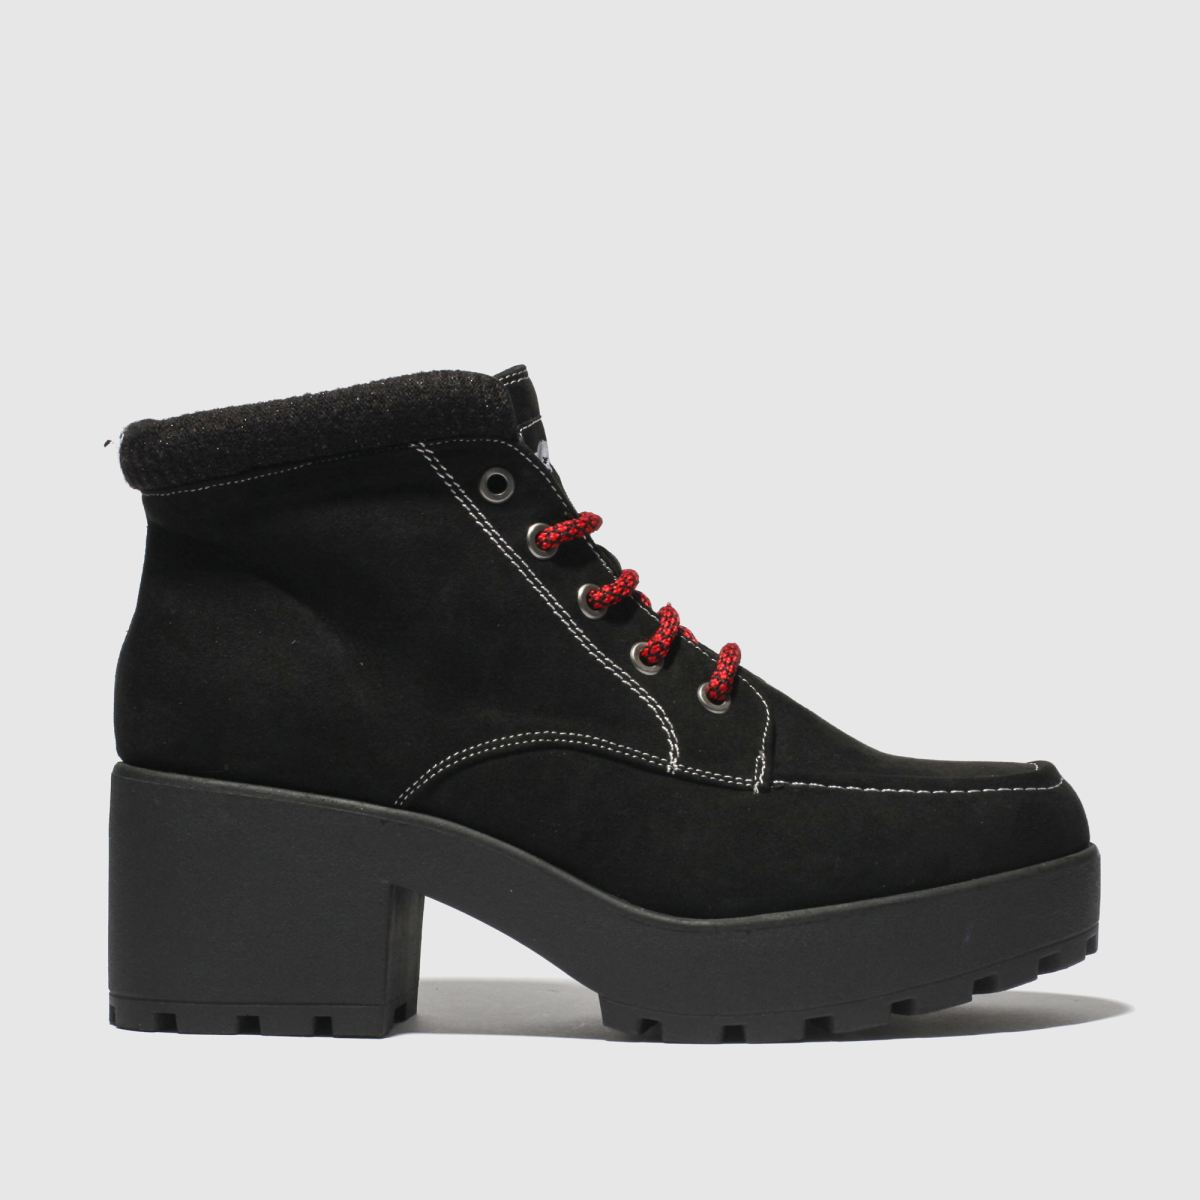 Rocket Dog Black Carden Boots